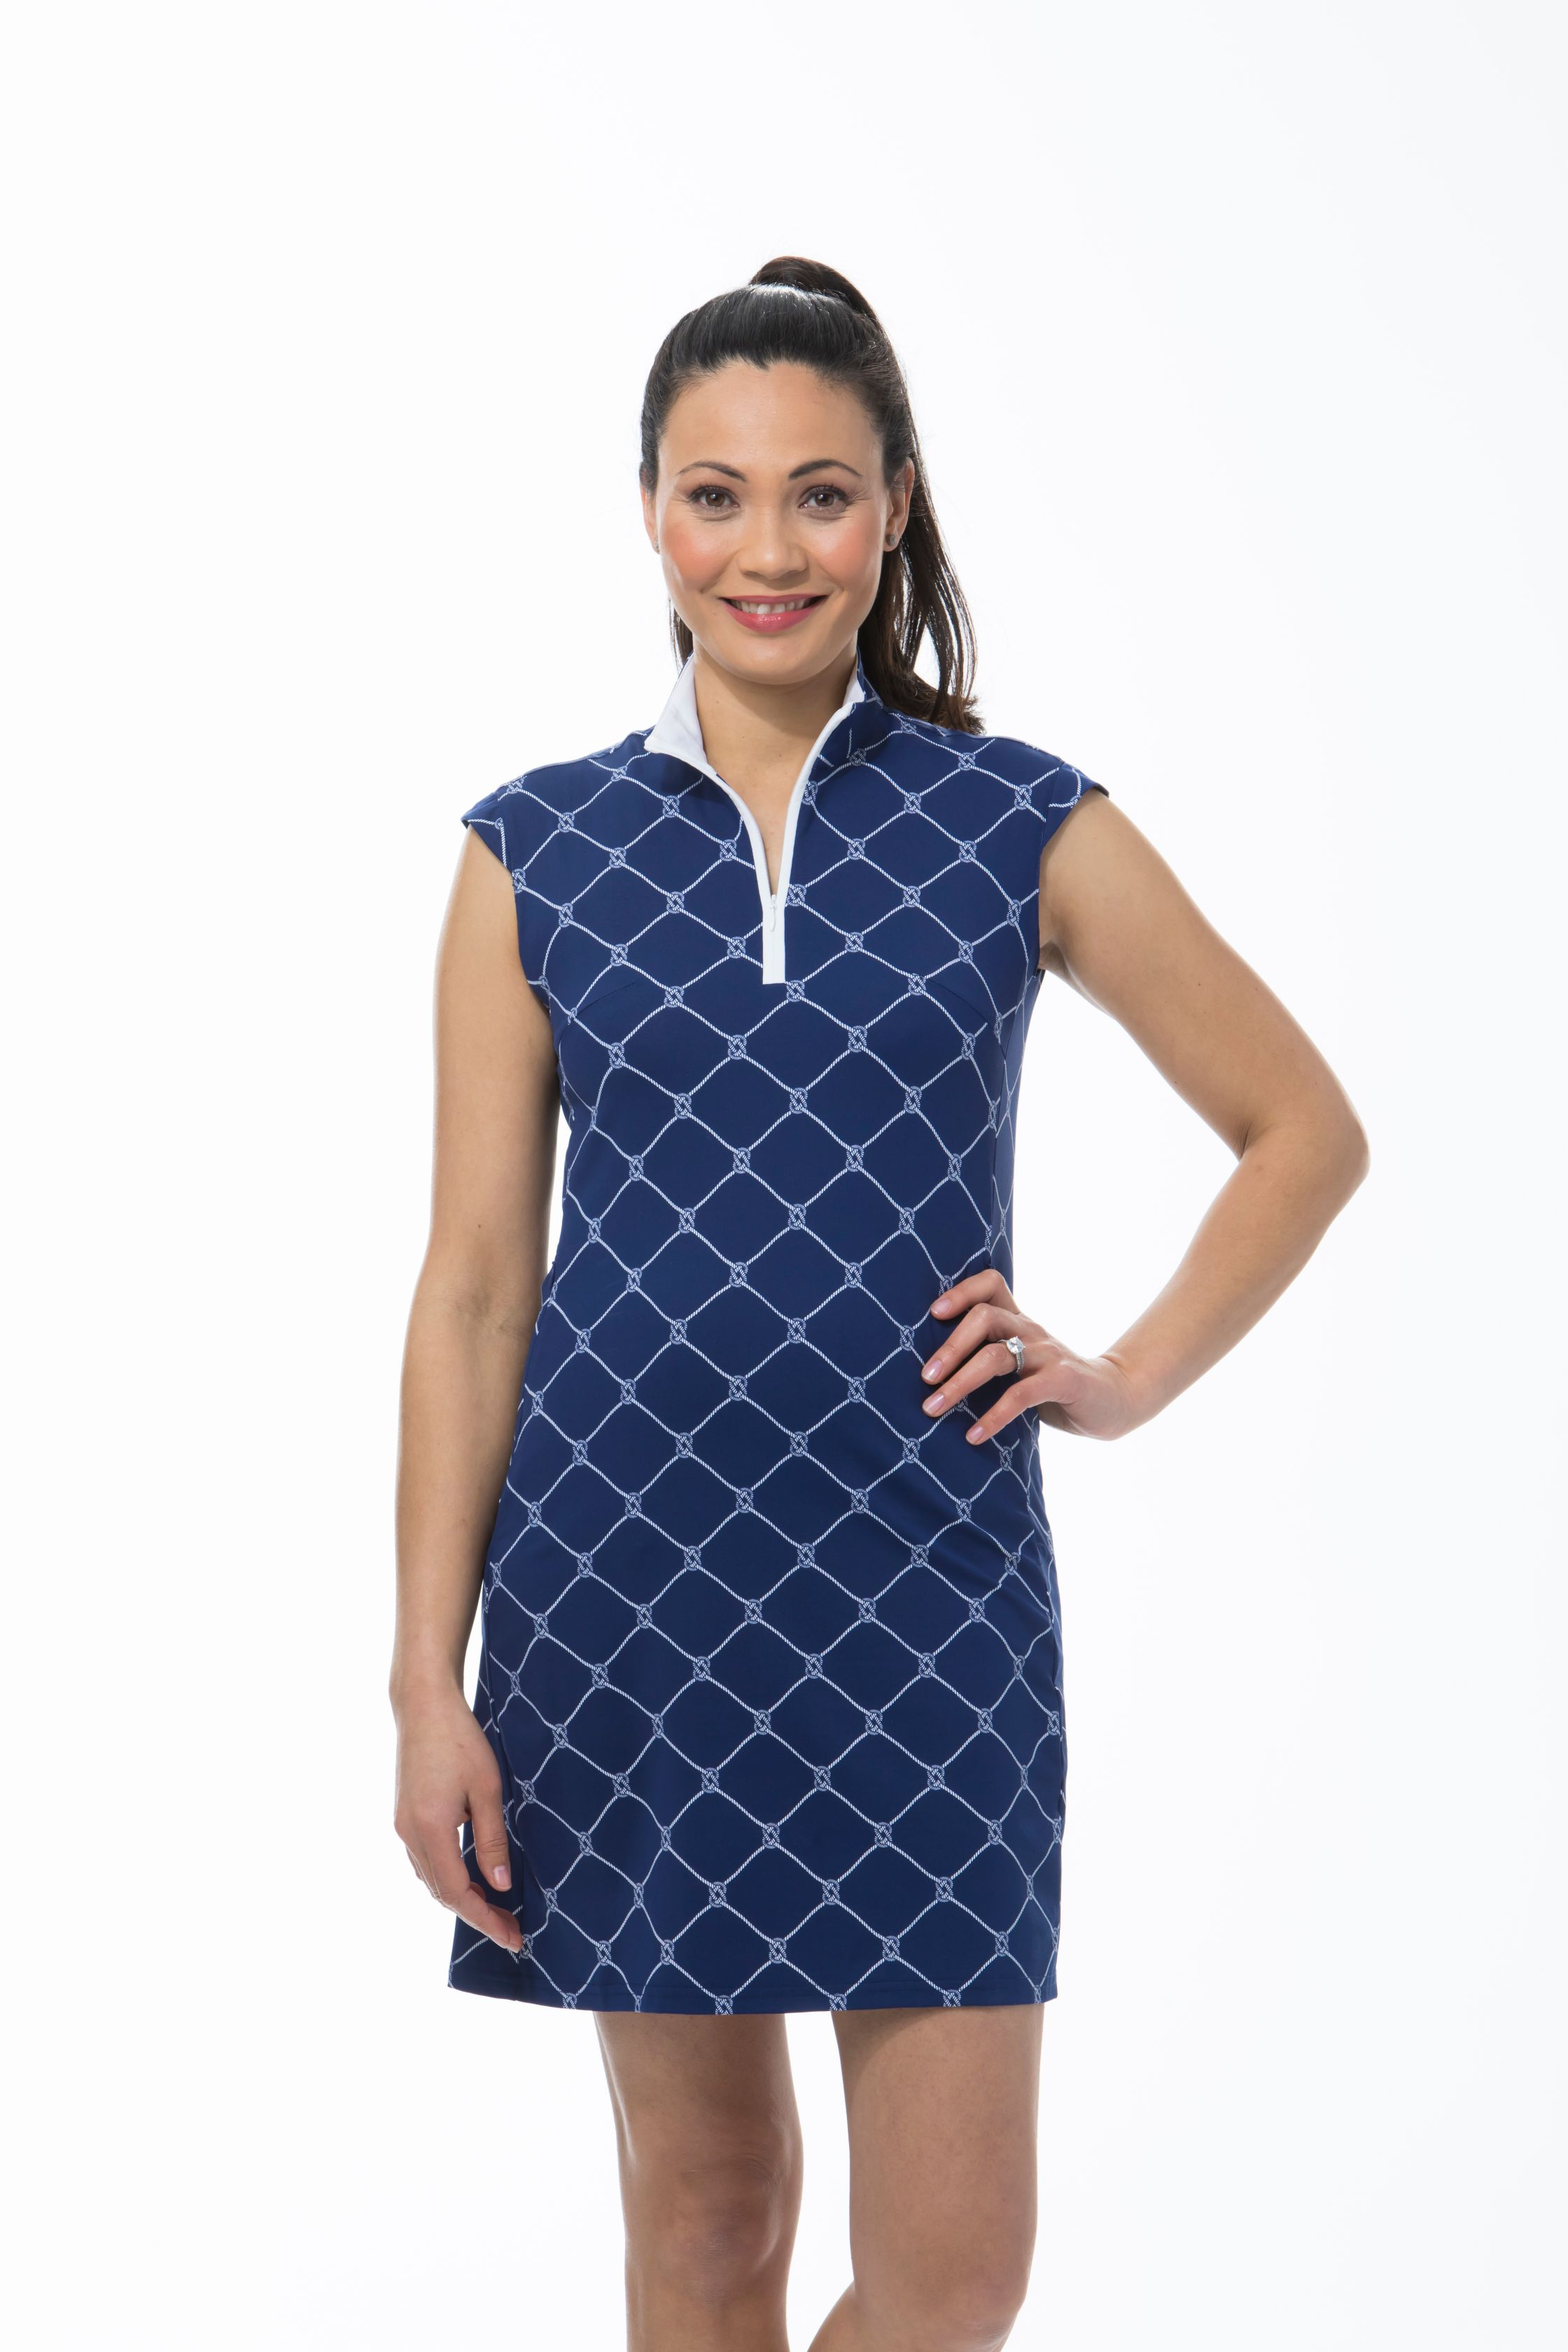 900722I. SanSoleil SolStyle ICE. Sleeveless Zip Mock Dress. Knotical Navy Blue